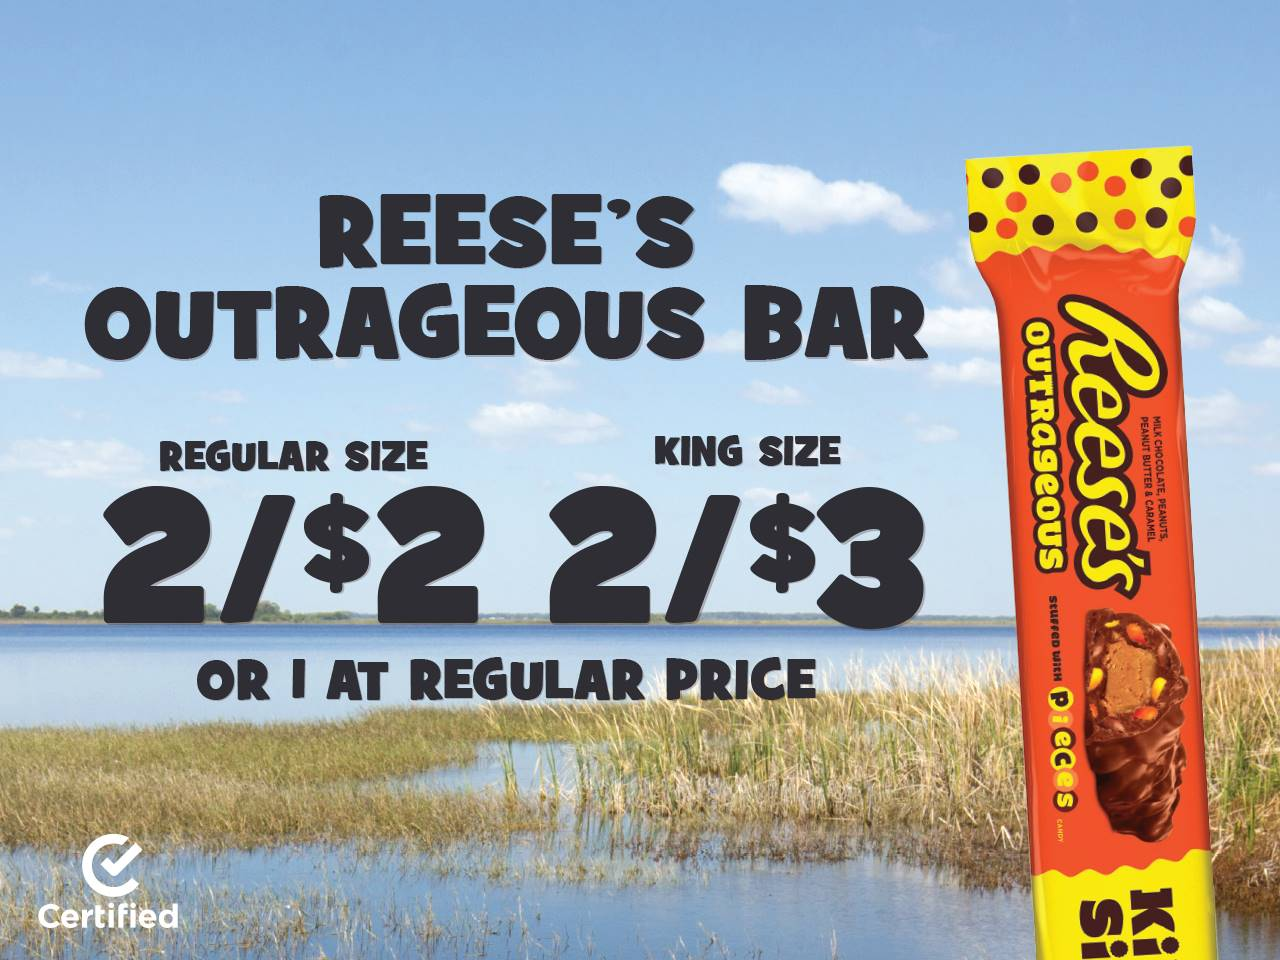 Reese's Outrageous Bar 2 Reg. Size for $2, 2 King Size for $3, or 1 at Regular Price